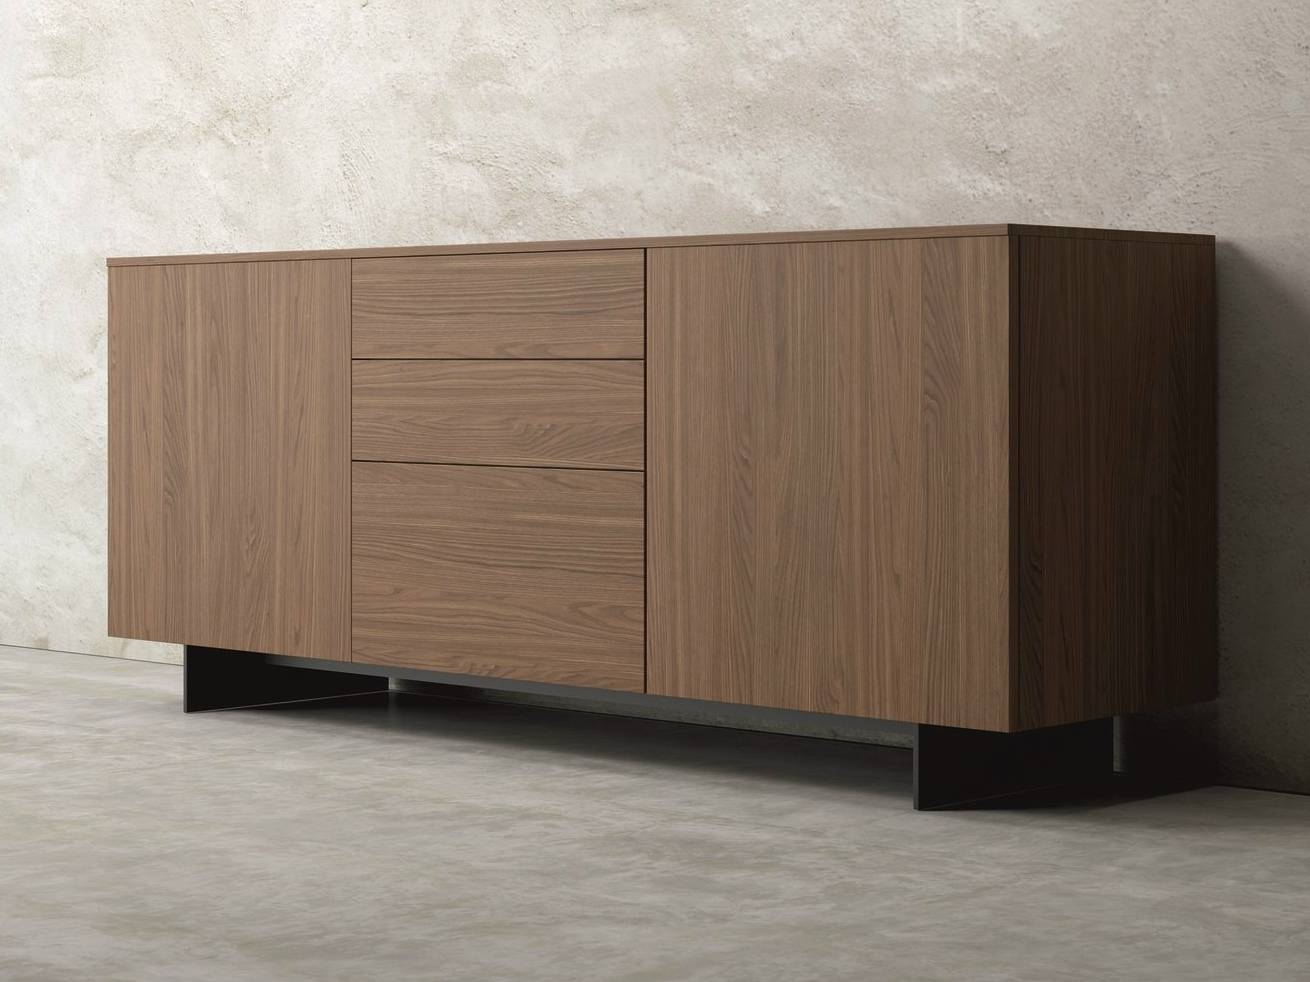 Slim | Walnut Sideboarddall'agnese Design Imago Design inside Slim Sideboards (Image 26 of 30)